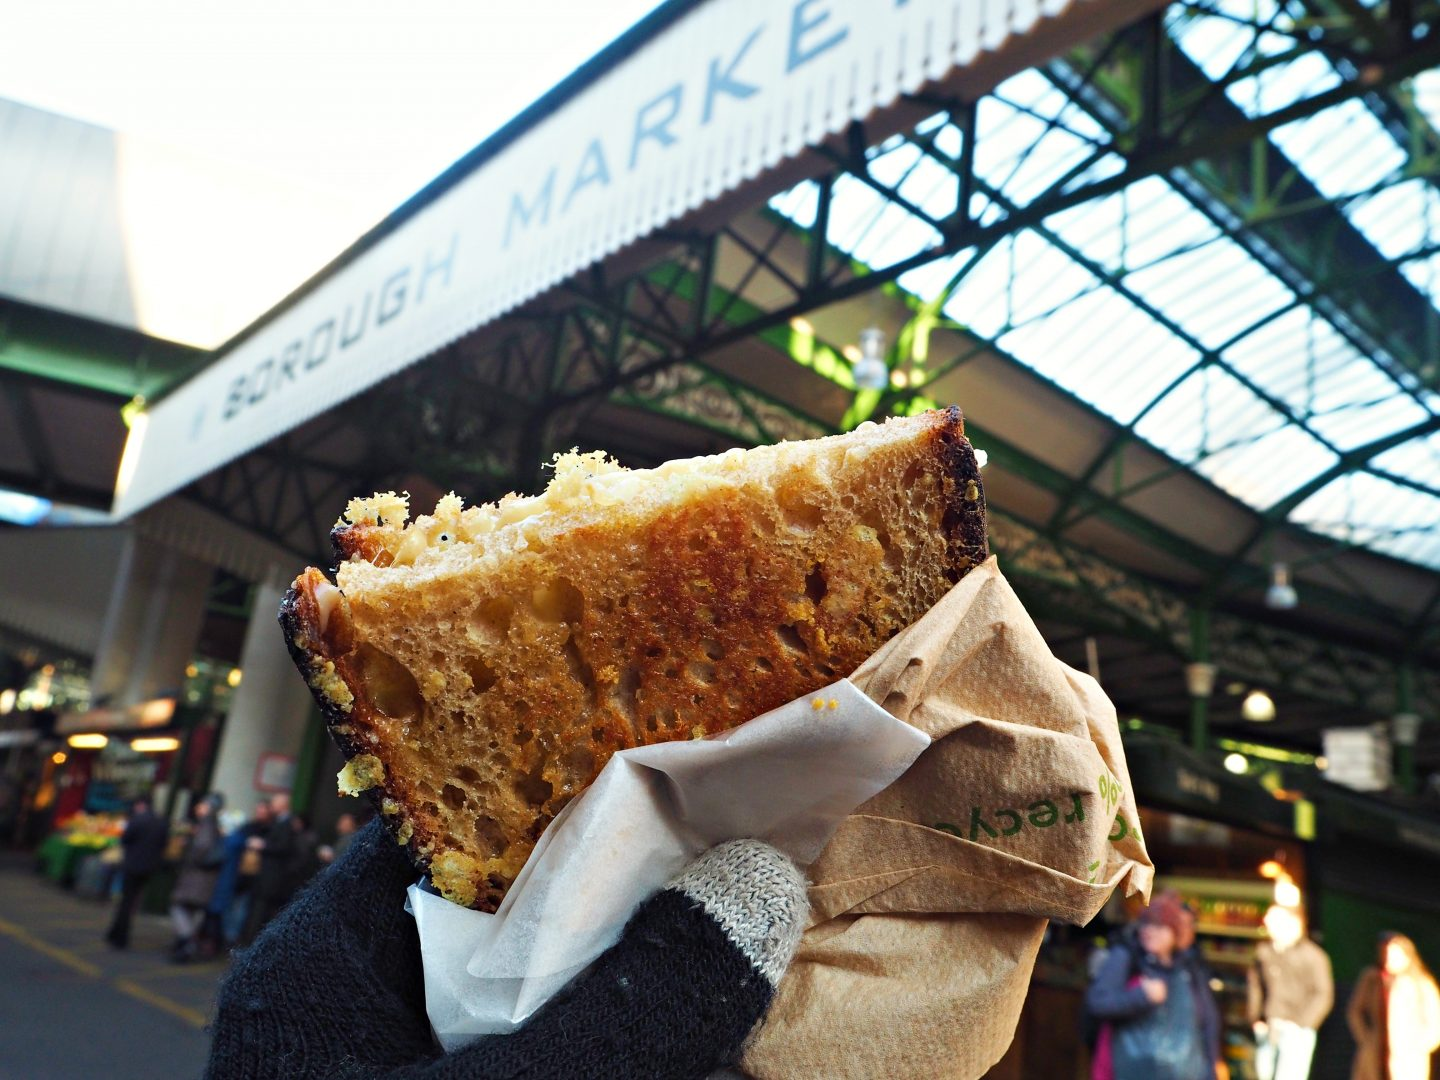 What to eat at London's Borough Market